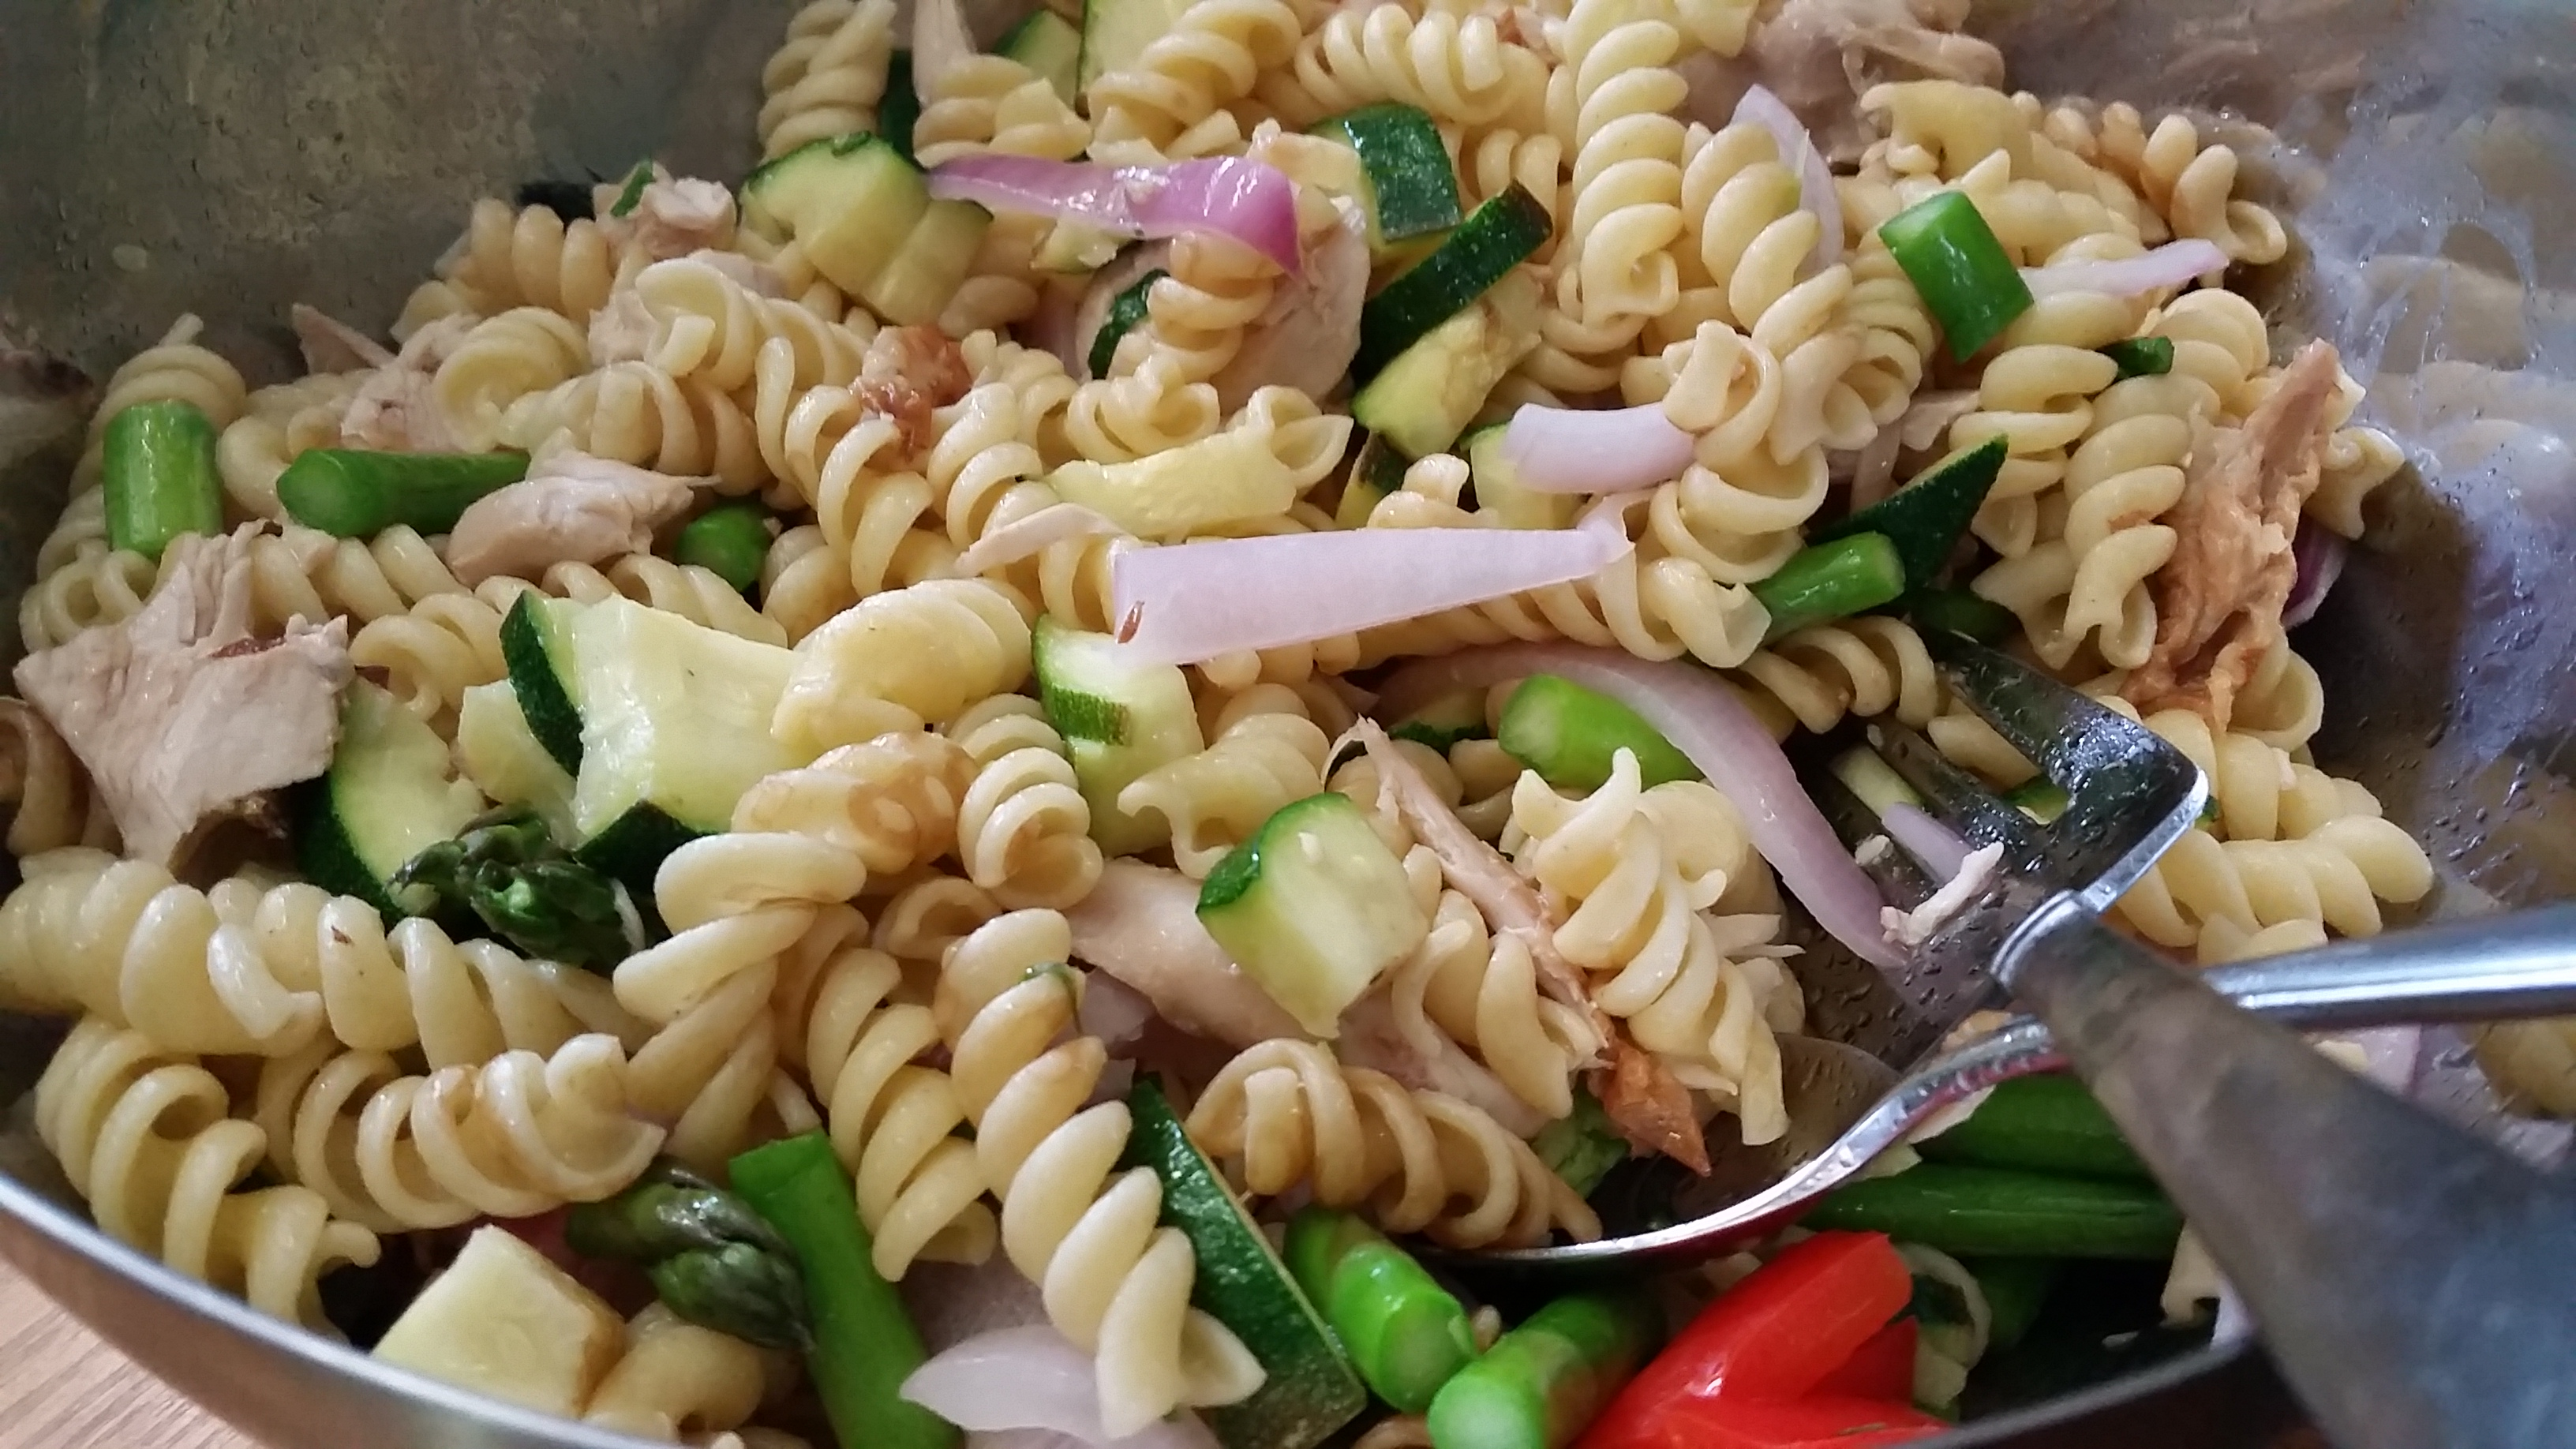 Recipe: Noodles and Veggies with Chicken